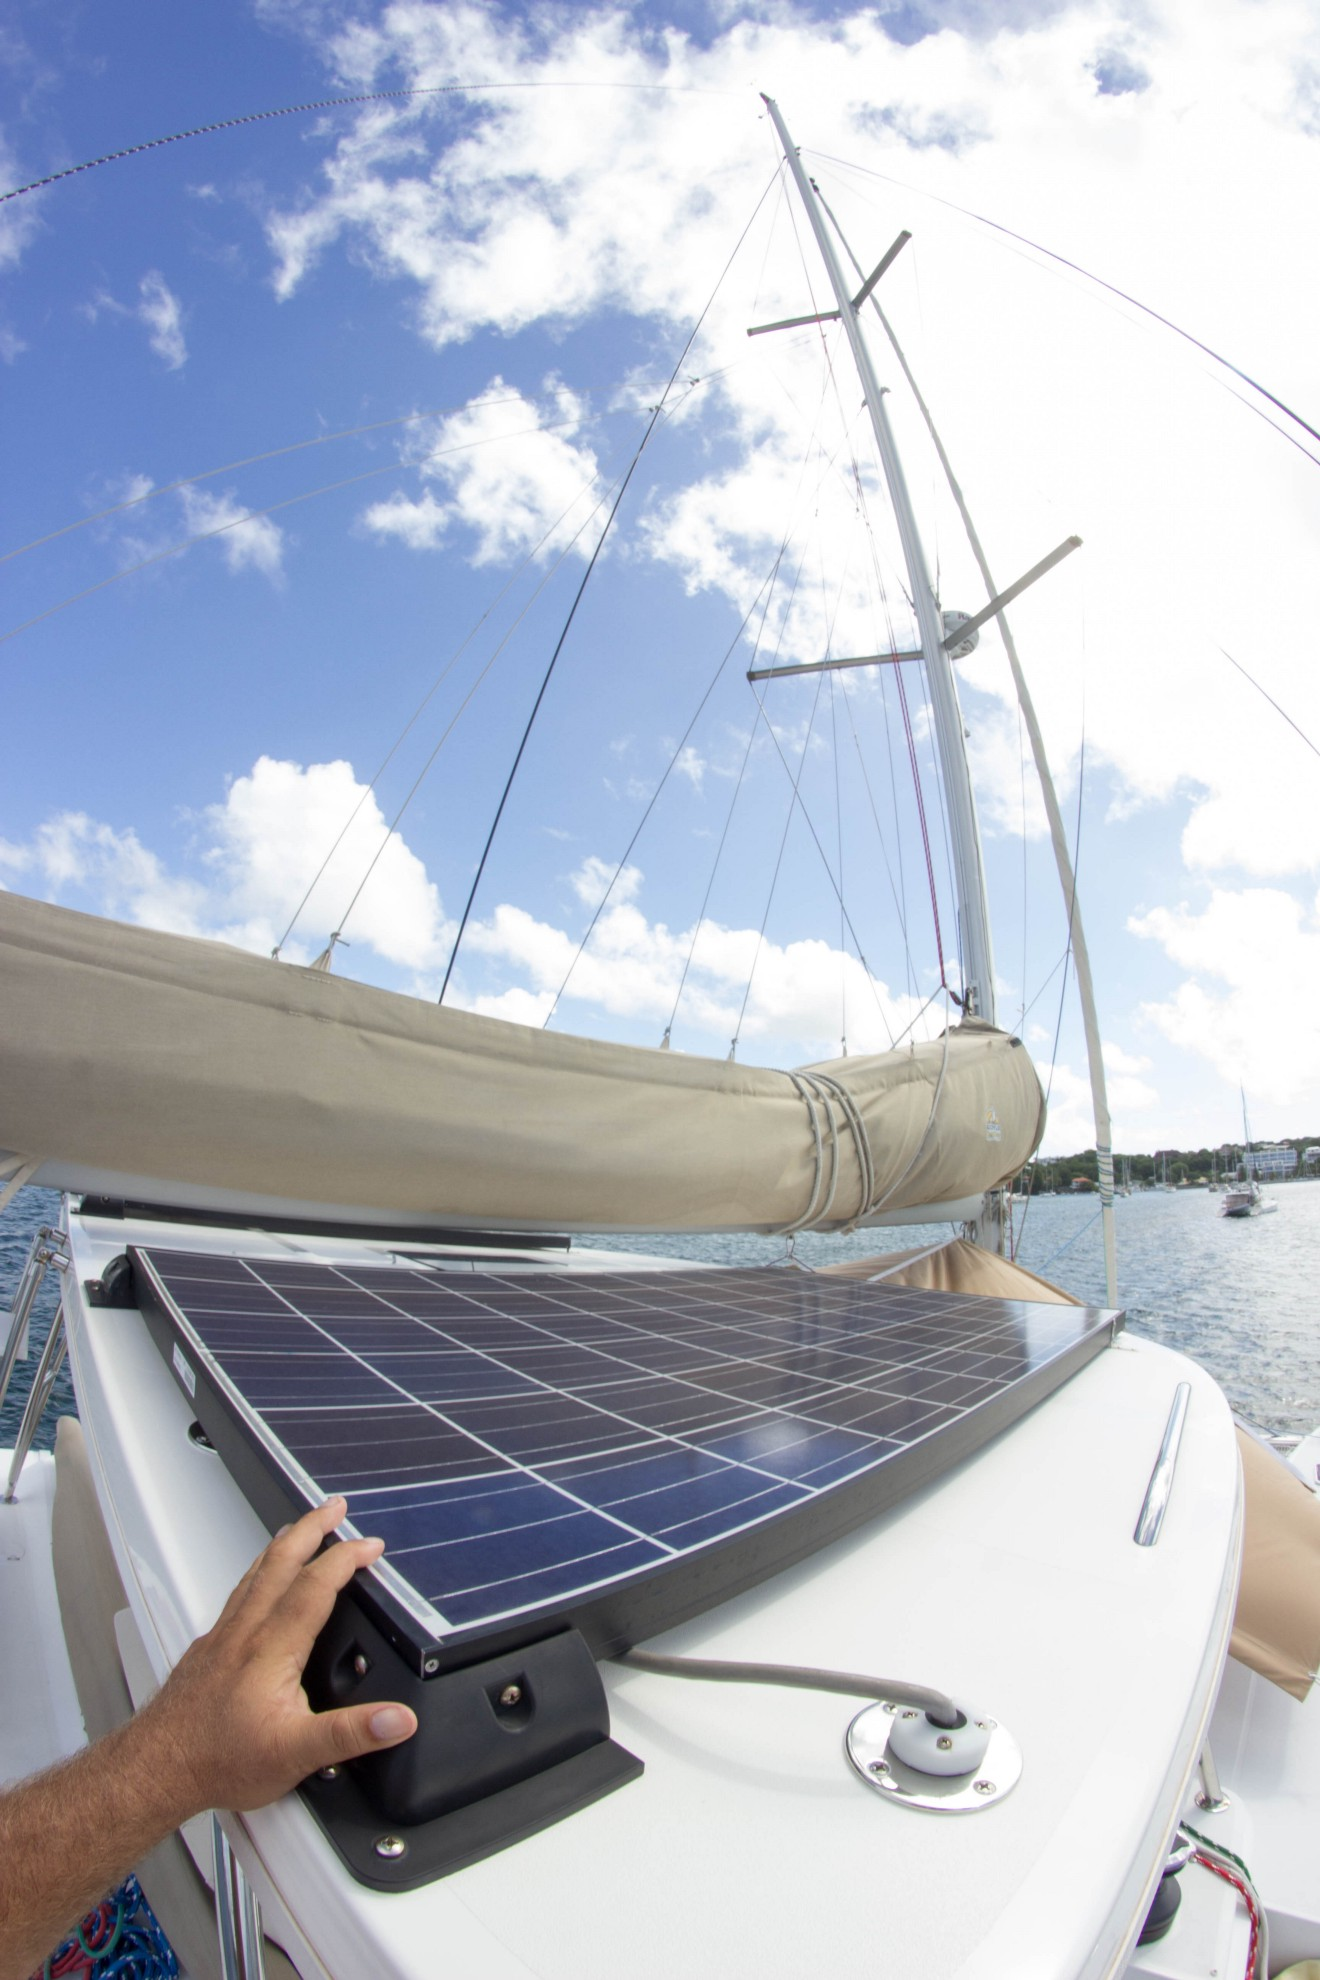 The hard bimini over the flybridge carries two Kyocera 255 watt solar panels